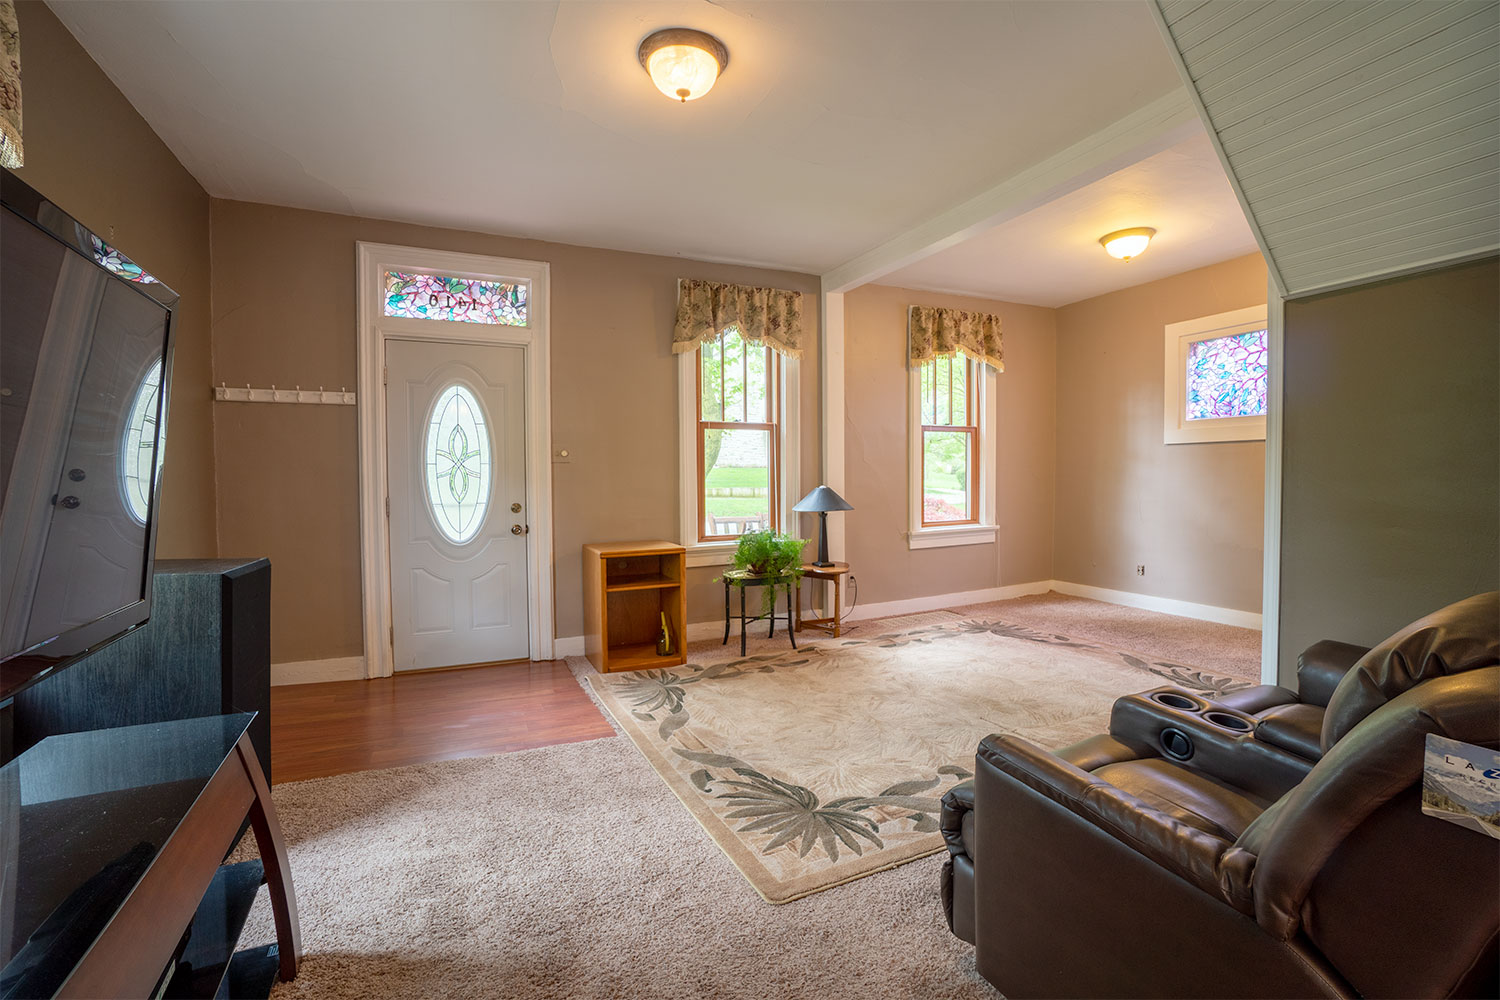 Real Estate Photography: Living Room